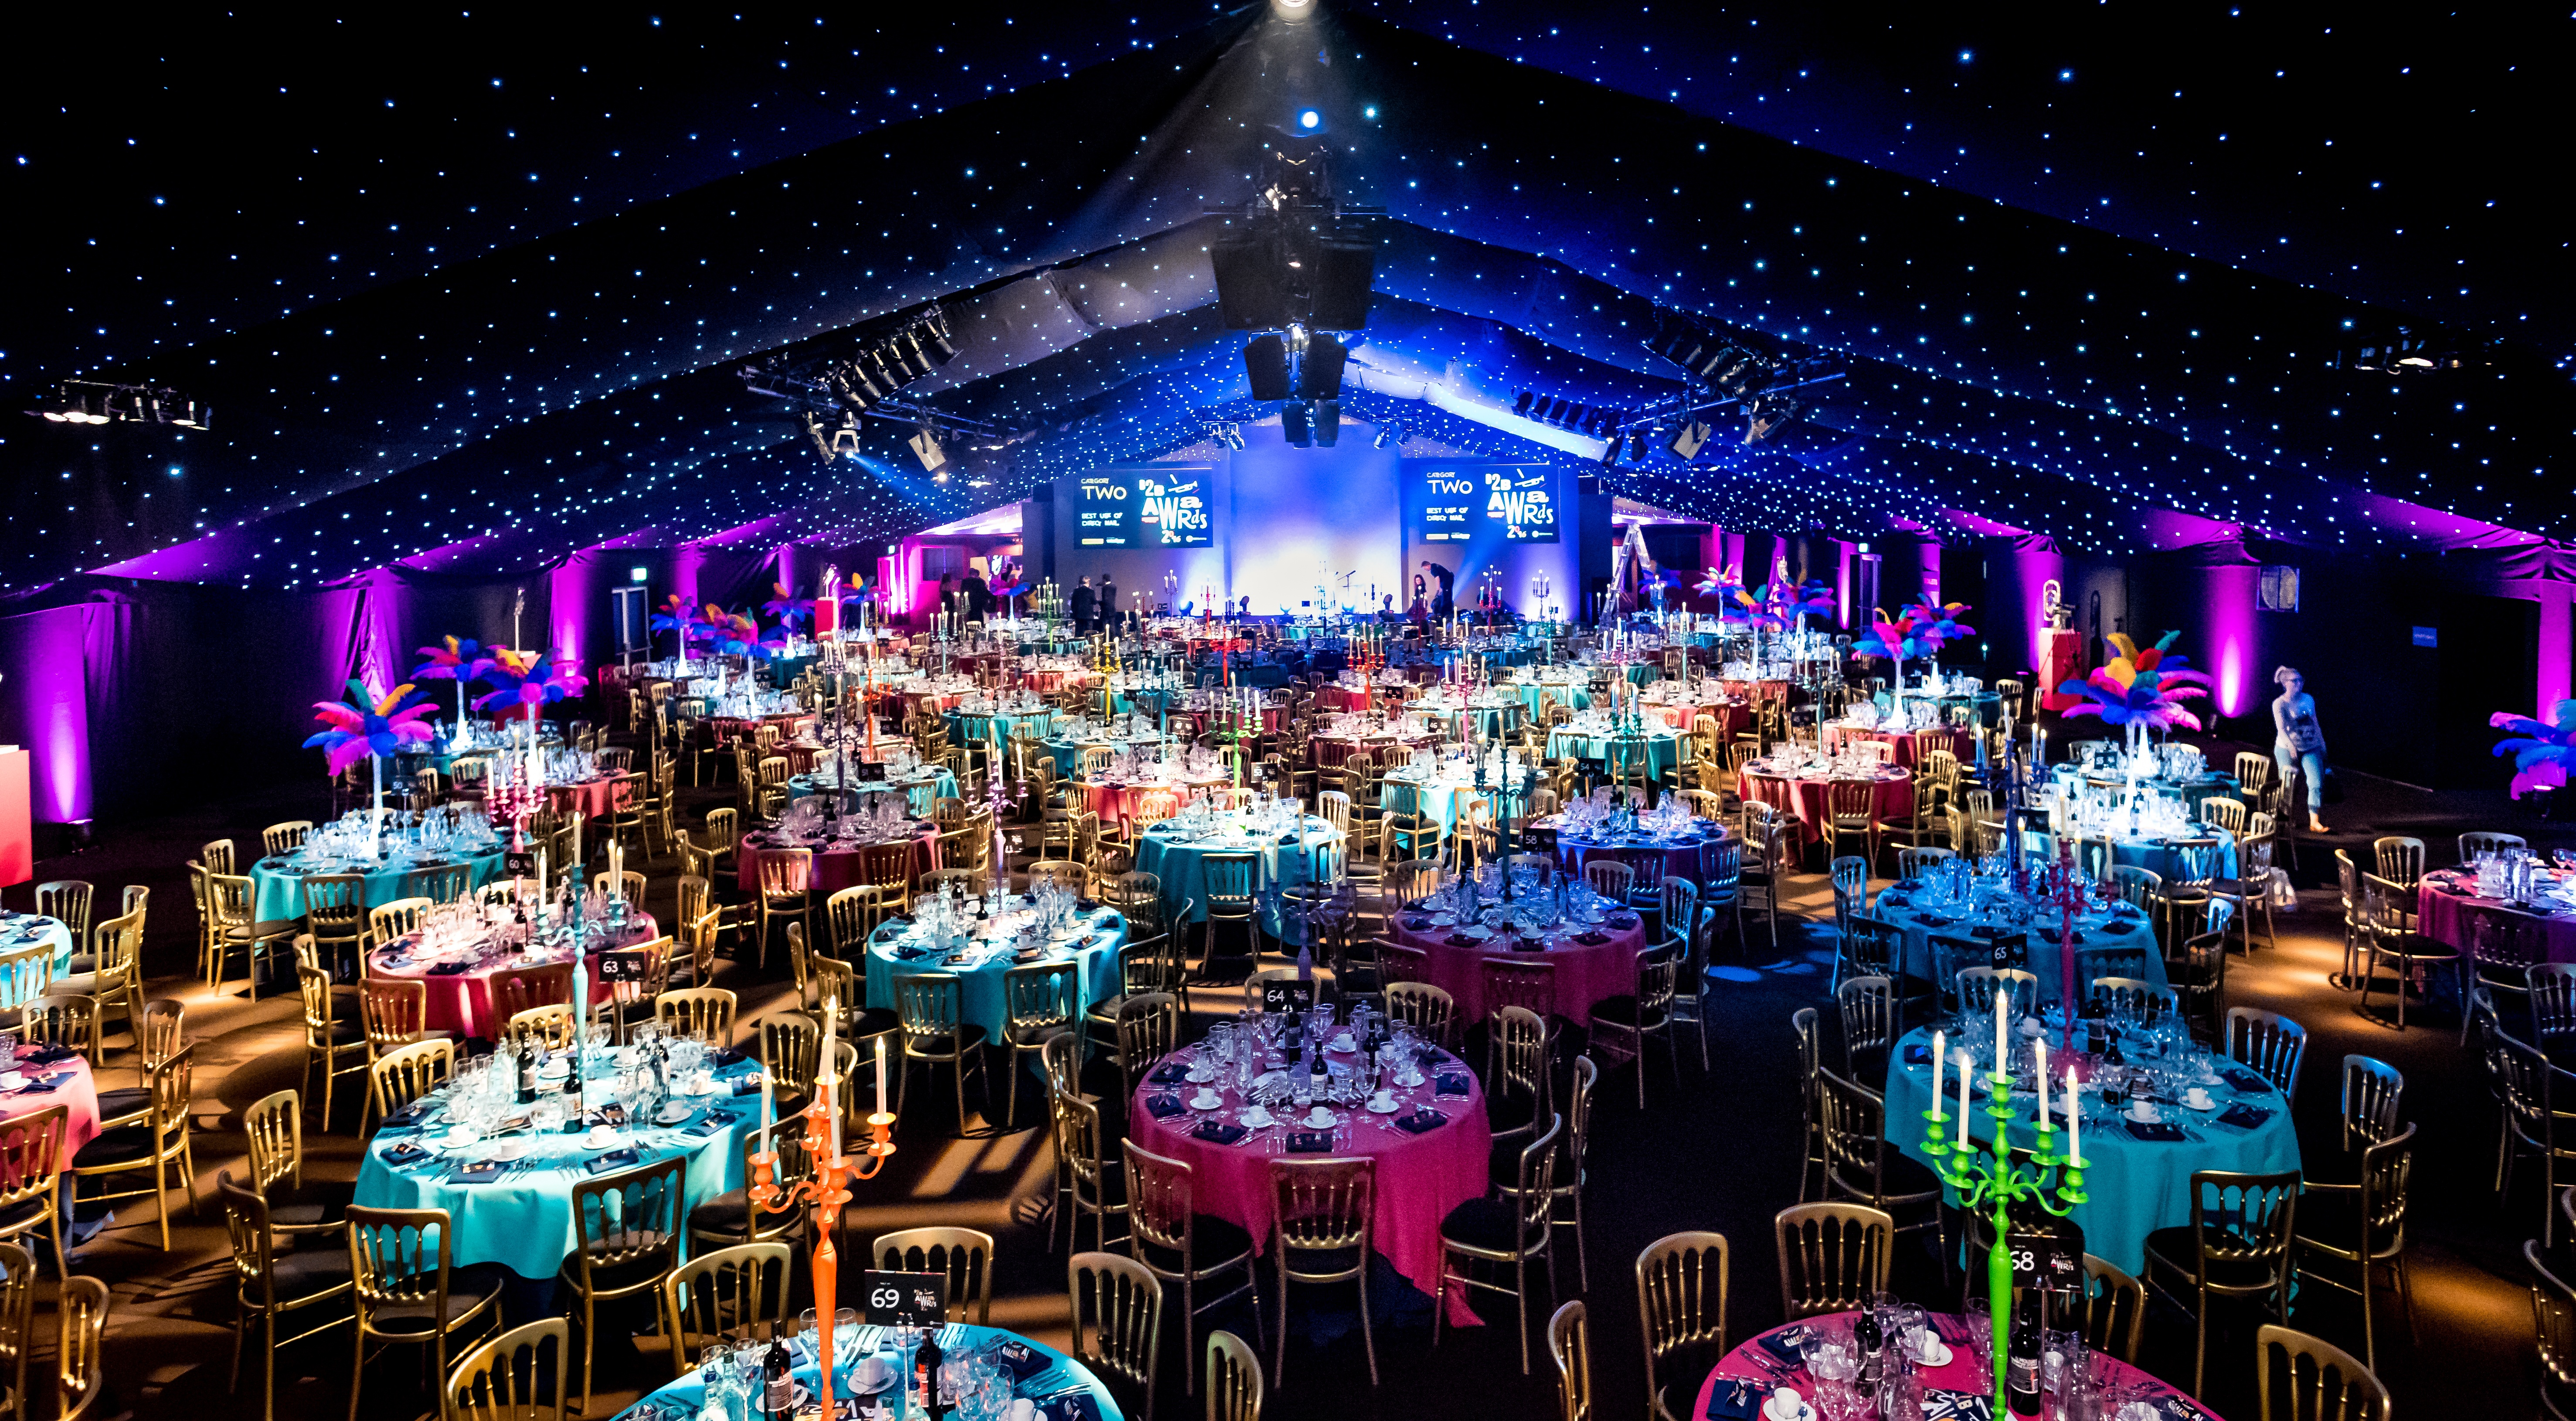 68959638-B2B-Marketing-Awards-2016-Simon-Callaghan-Photography-101.jpg